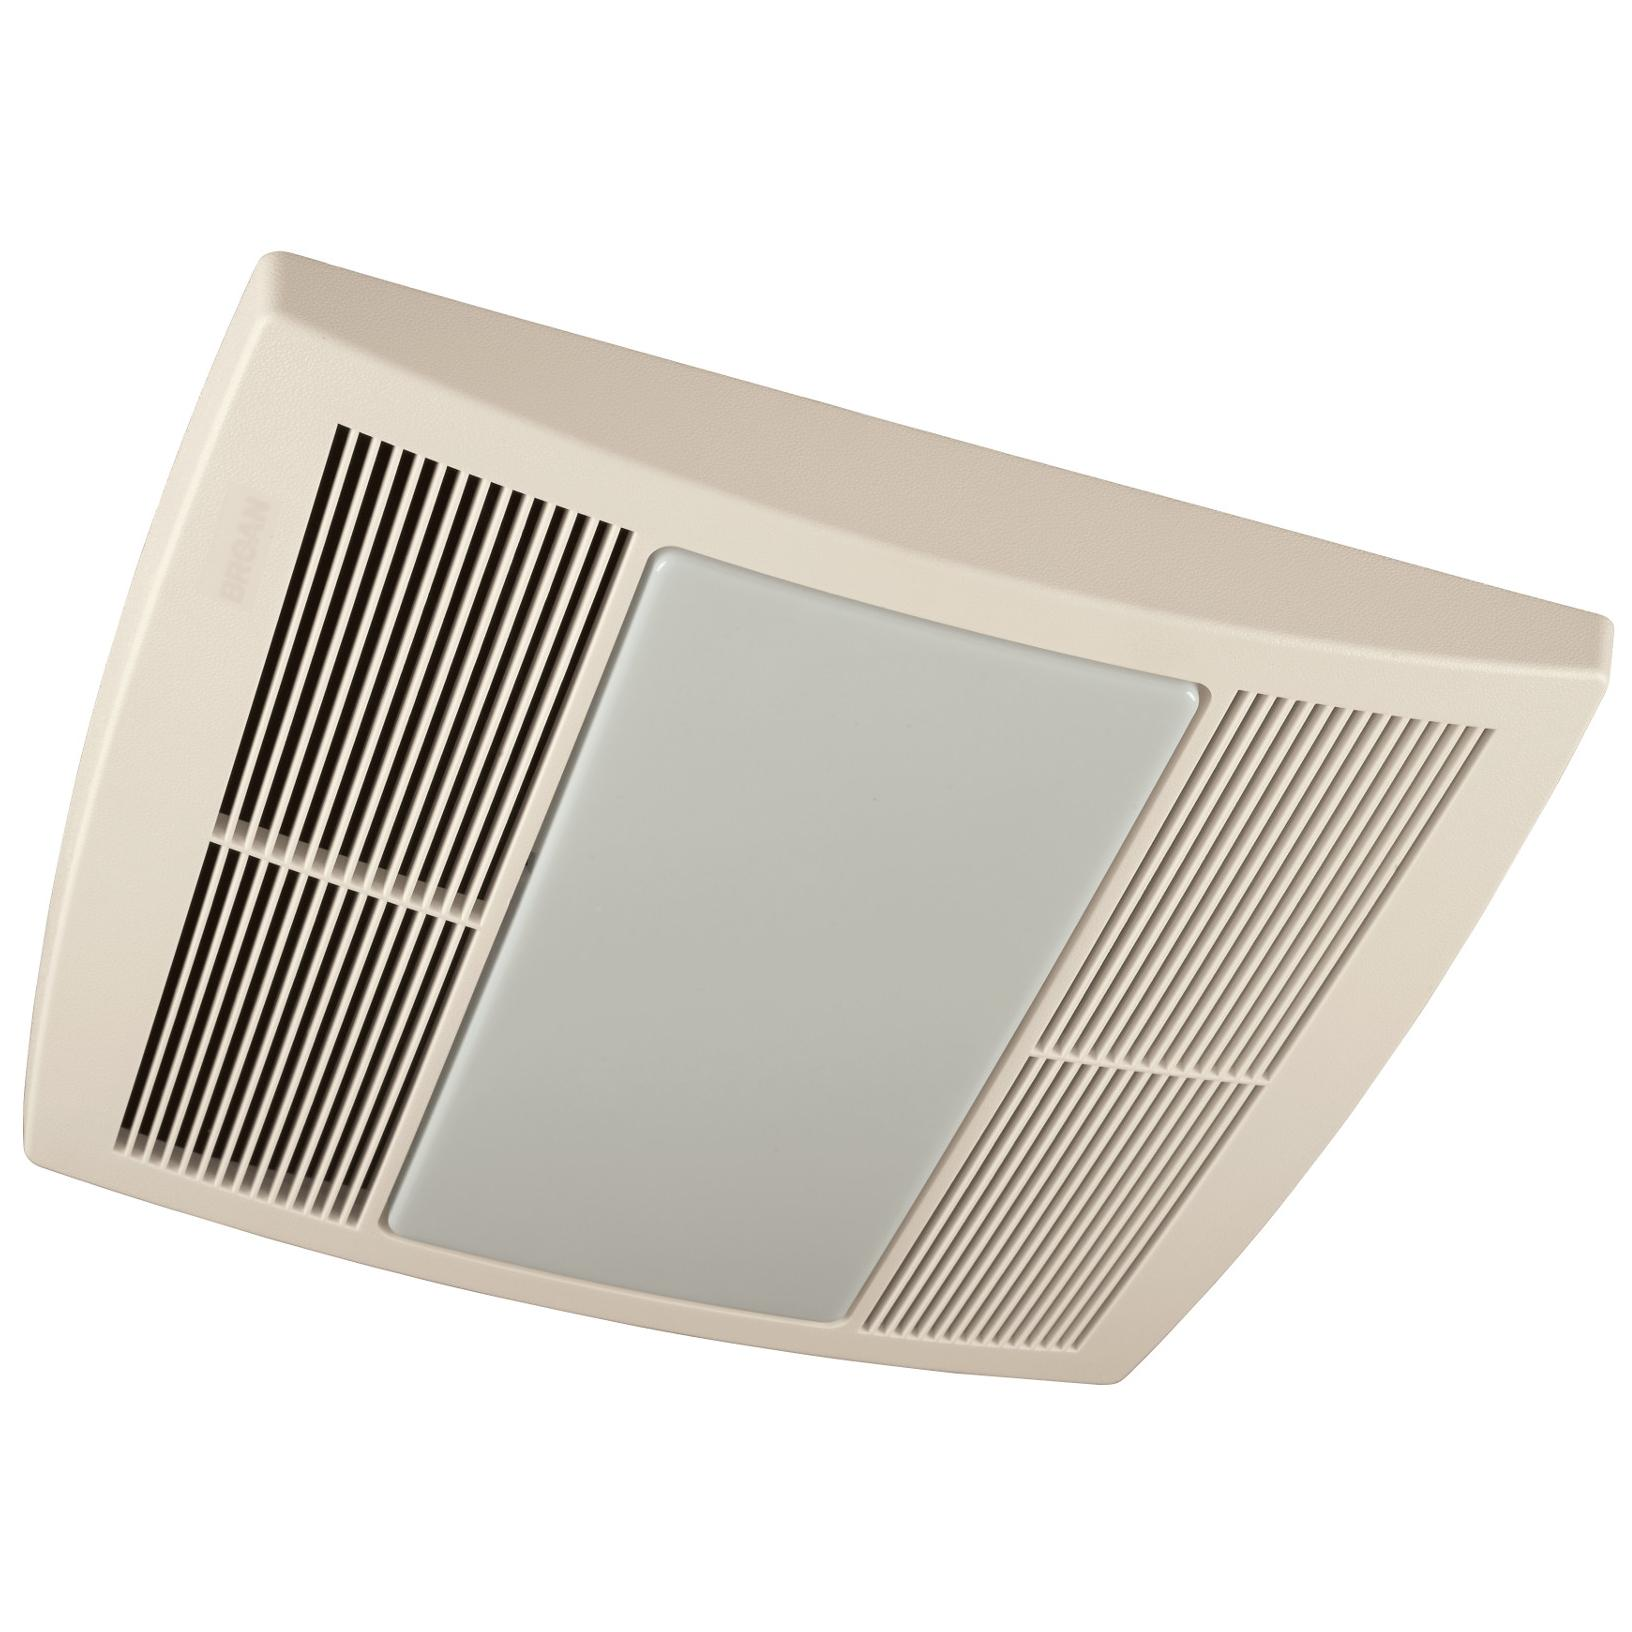 Bon Broan QTR110L Quiet Bath Fan, Fan/ Light/Night Light, 110 CFM